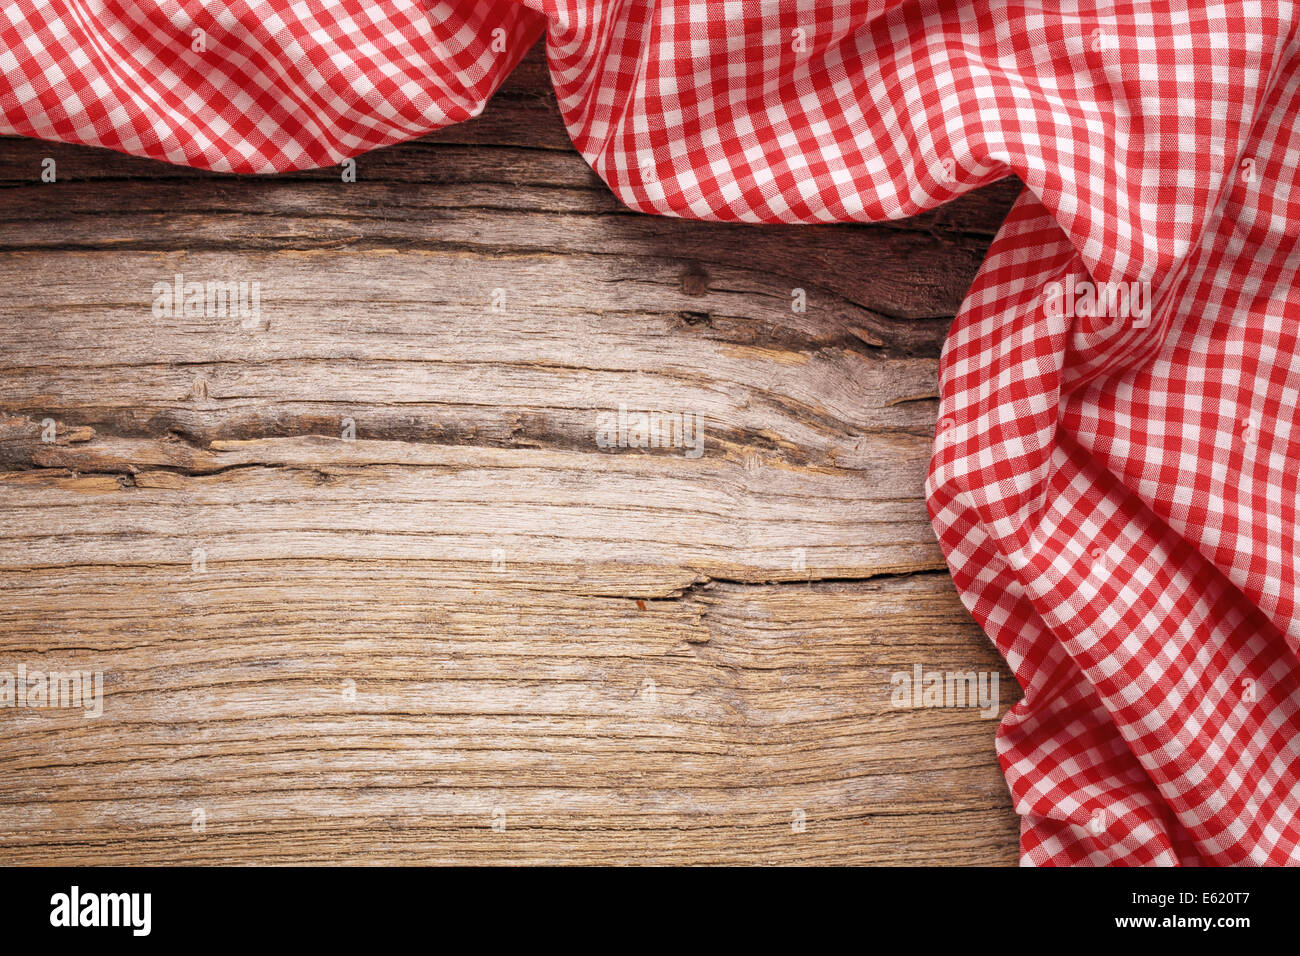 checkered tablecloth on wooden table stock photo 72573991 alamy